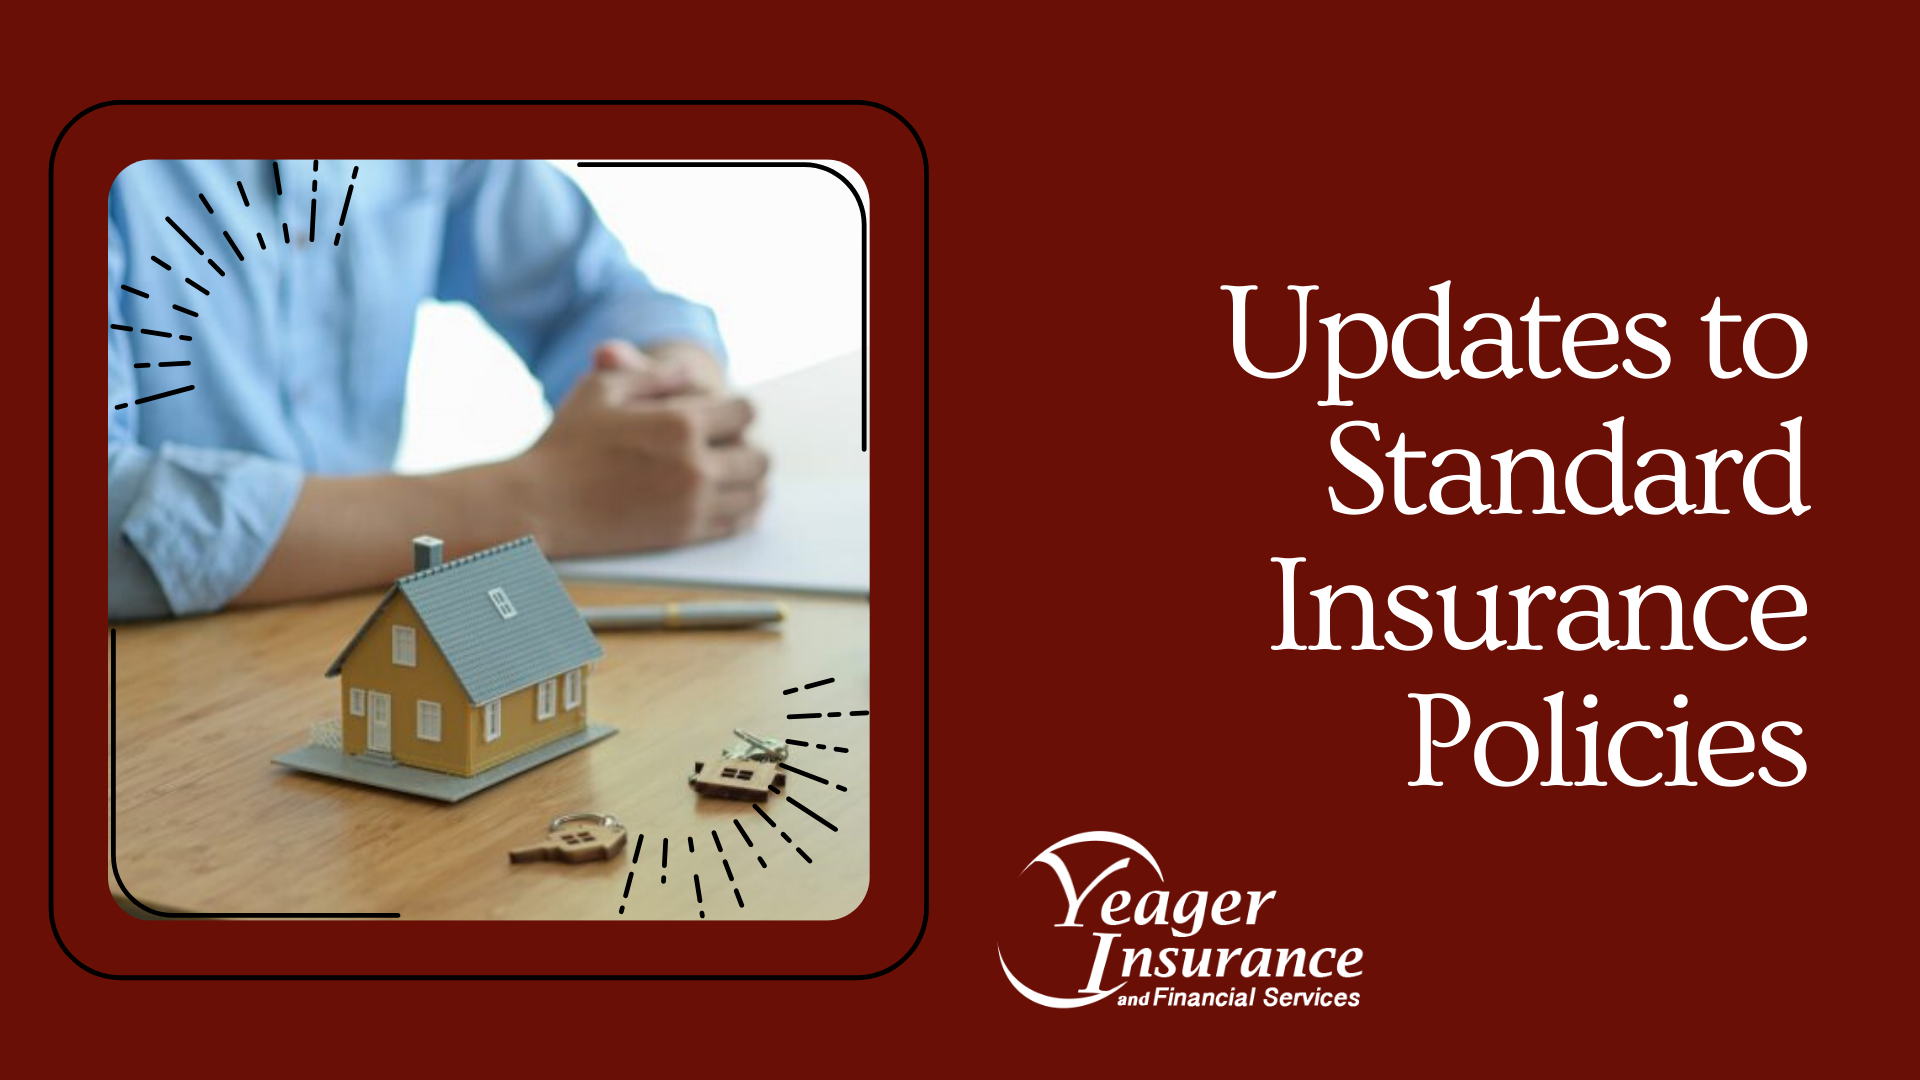 Updates to Standard Insurance Policies - Yeager Insurance Blog